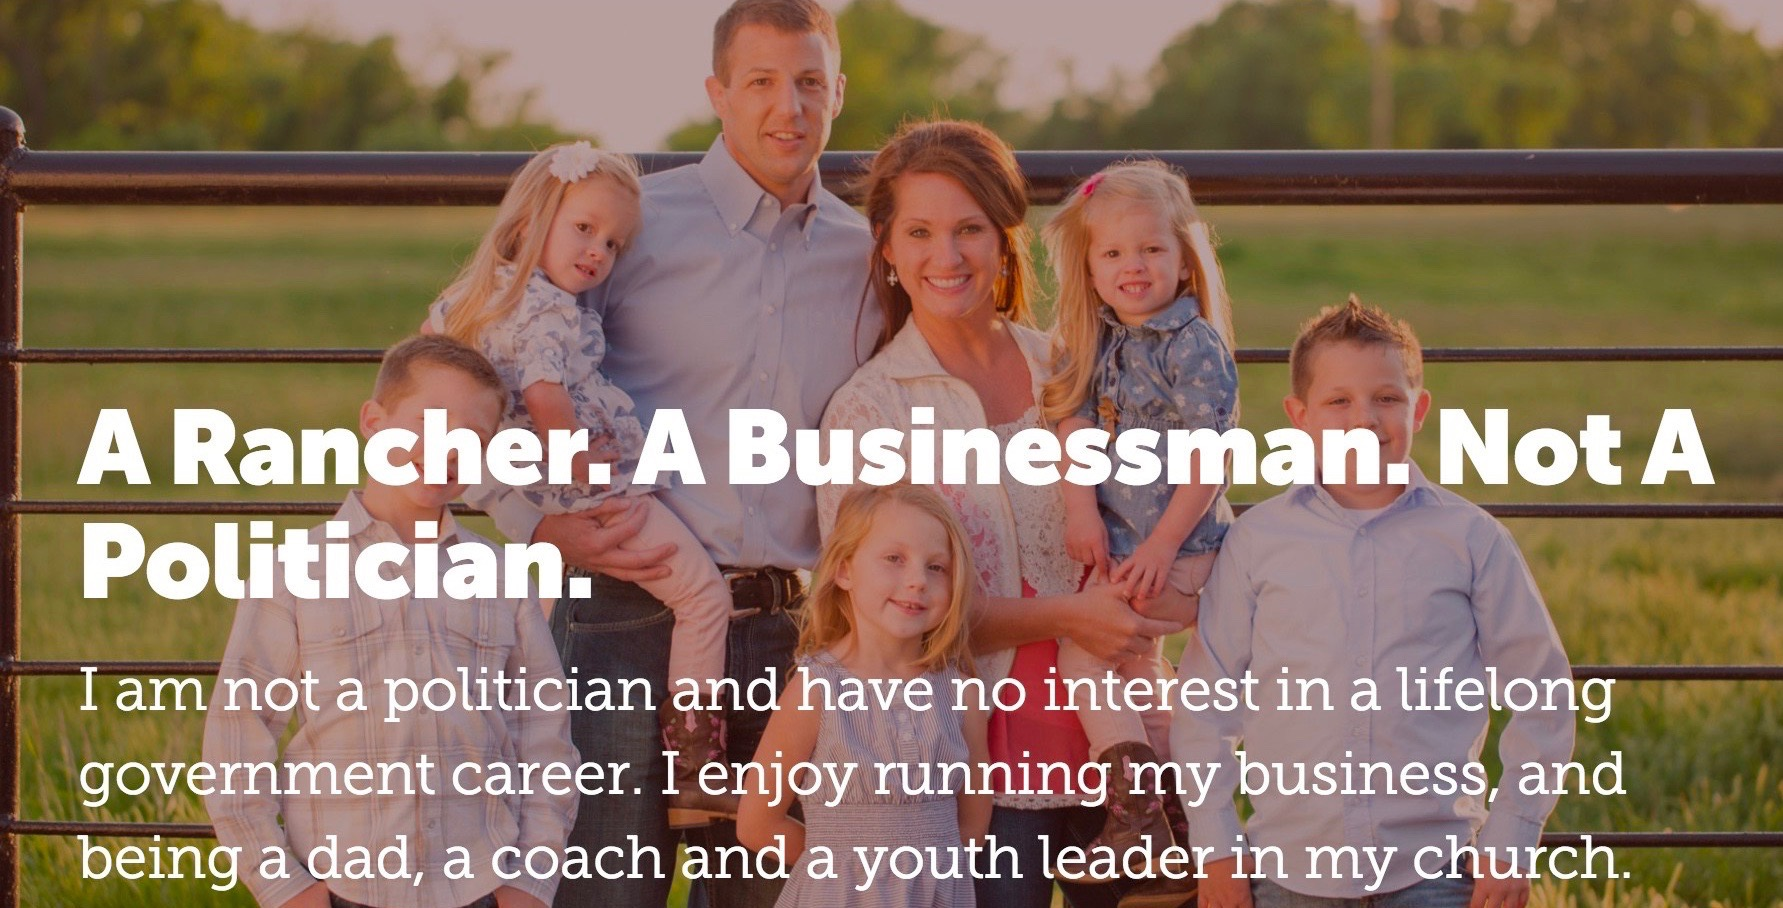 Mark Trahant: Markwayne Mullin breaks campaign pledge and becomes a career politician